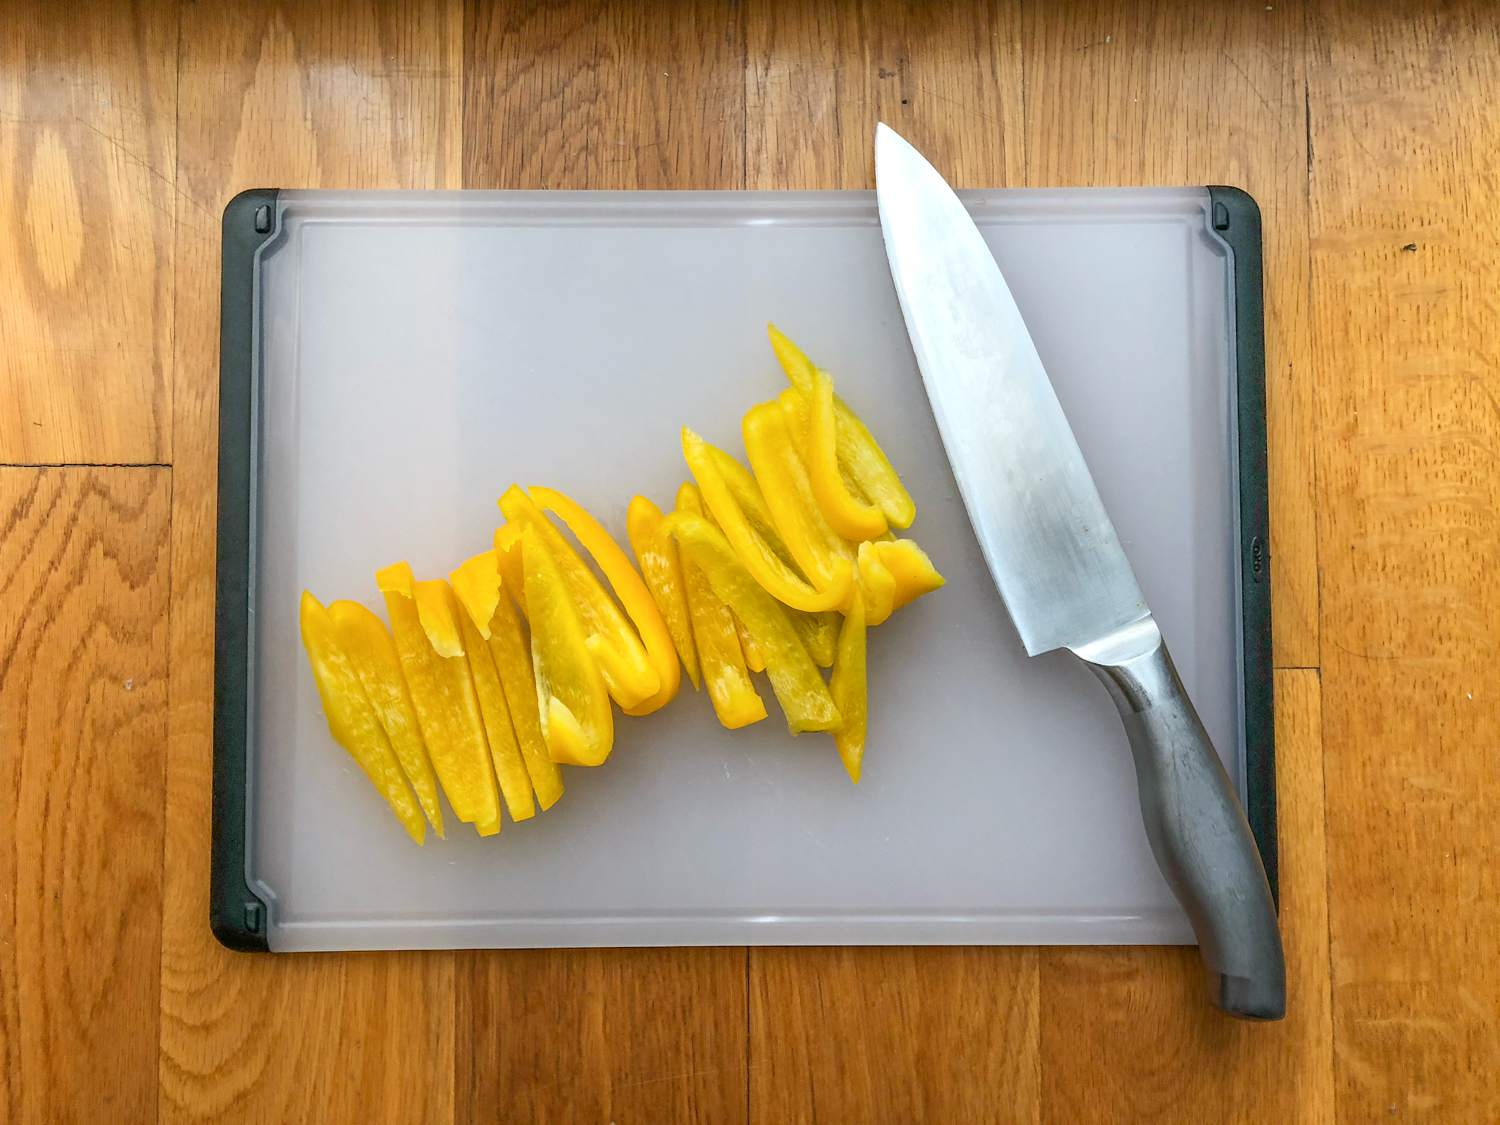 kitchen cutting board frigidaire appliances reviews the 7 best boards to buy in 2019 oxo good grips utility